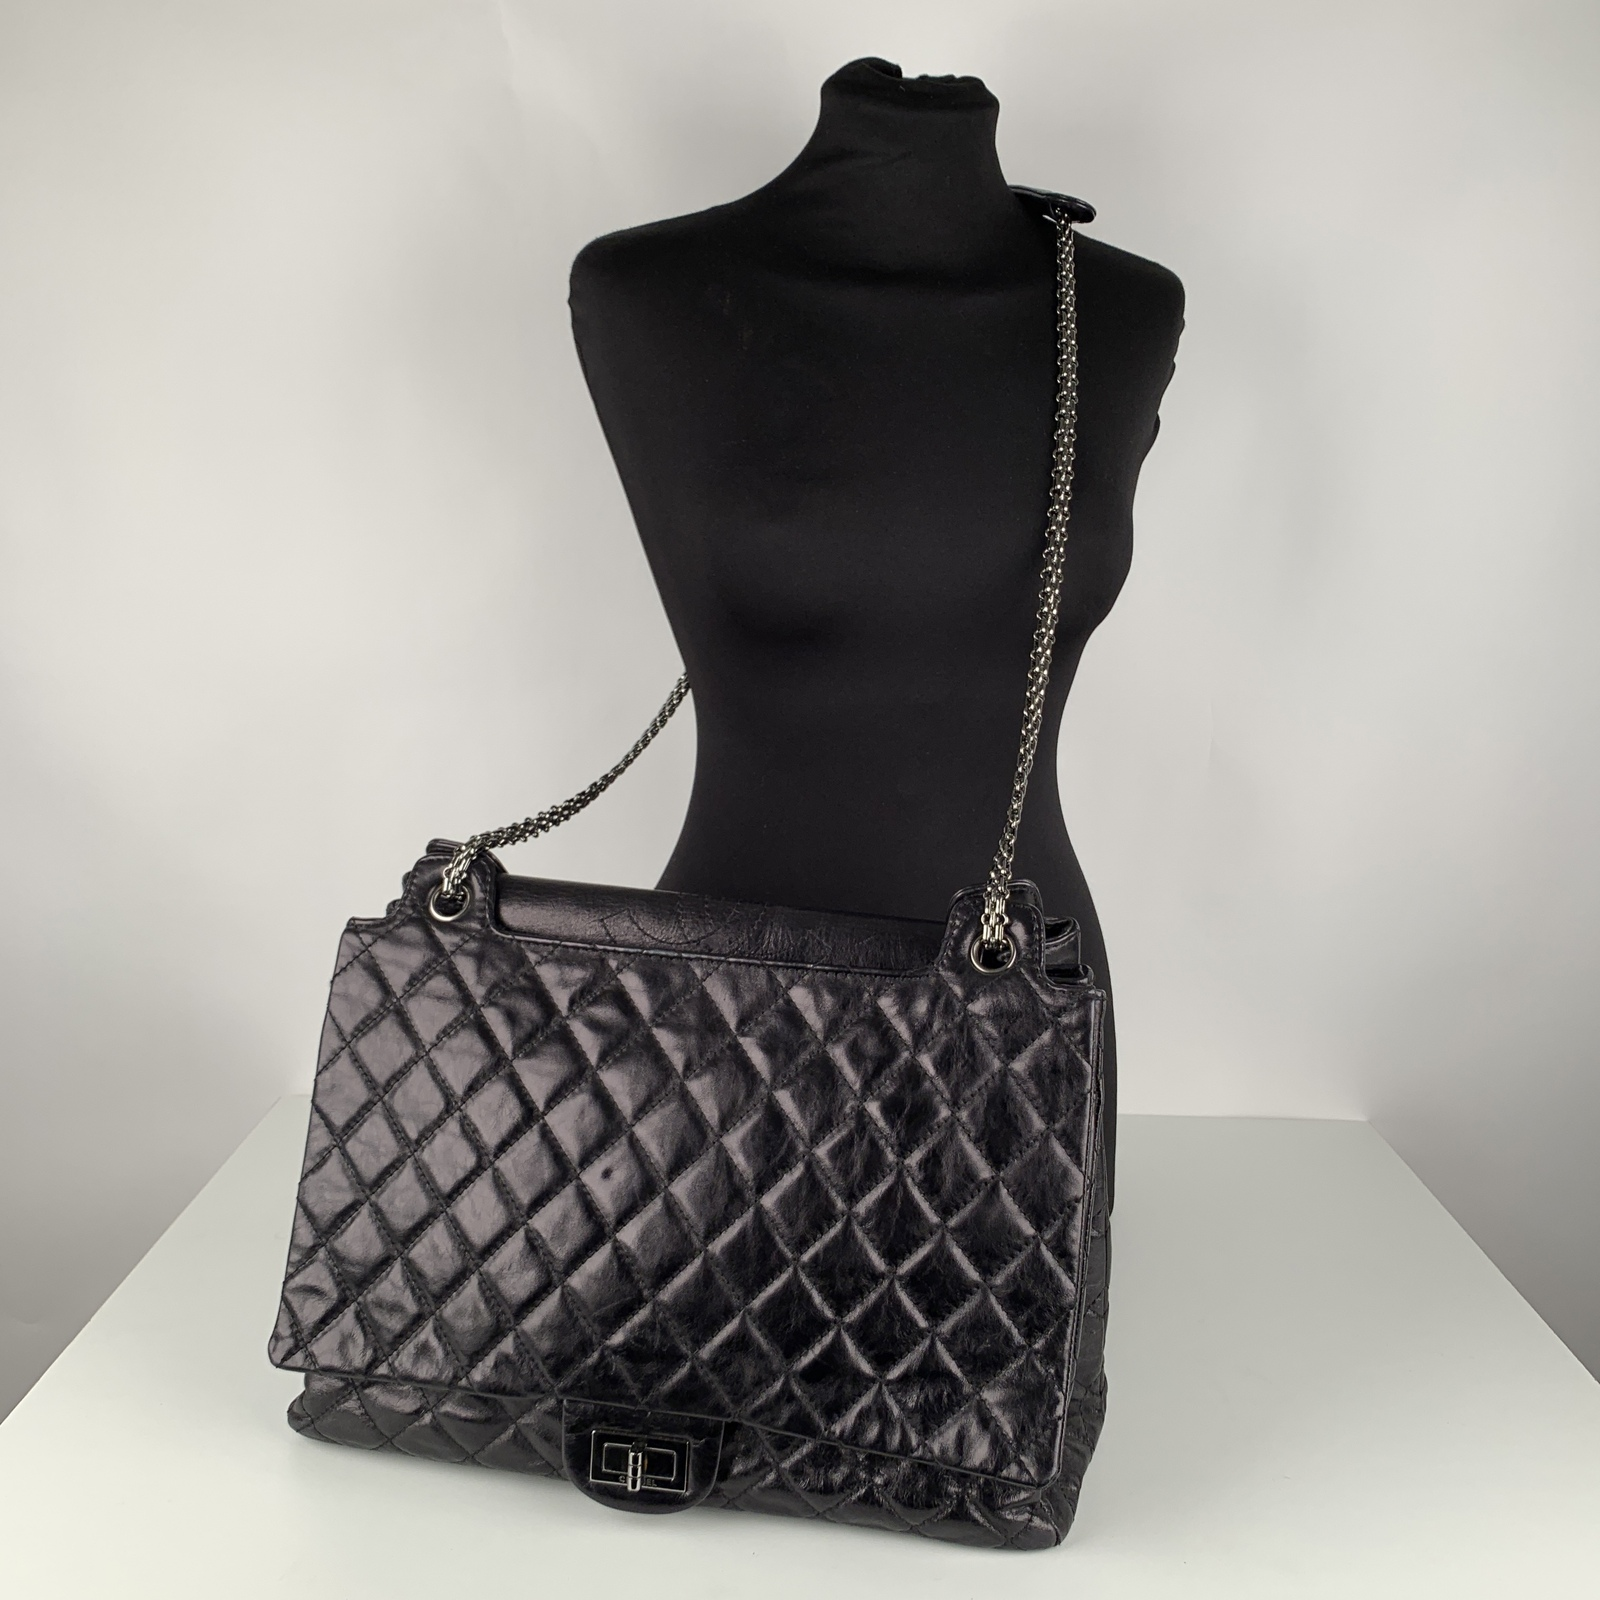 Authentic Chanel Black Quilted Leather Large Reissue 2.55 Accordion Flap Bag image 2